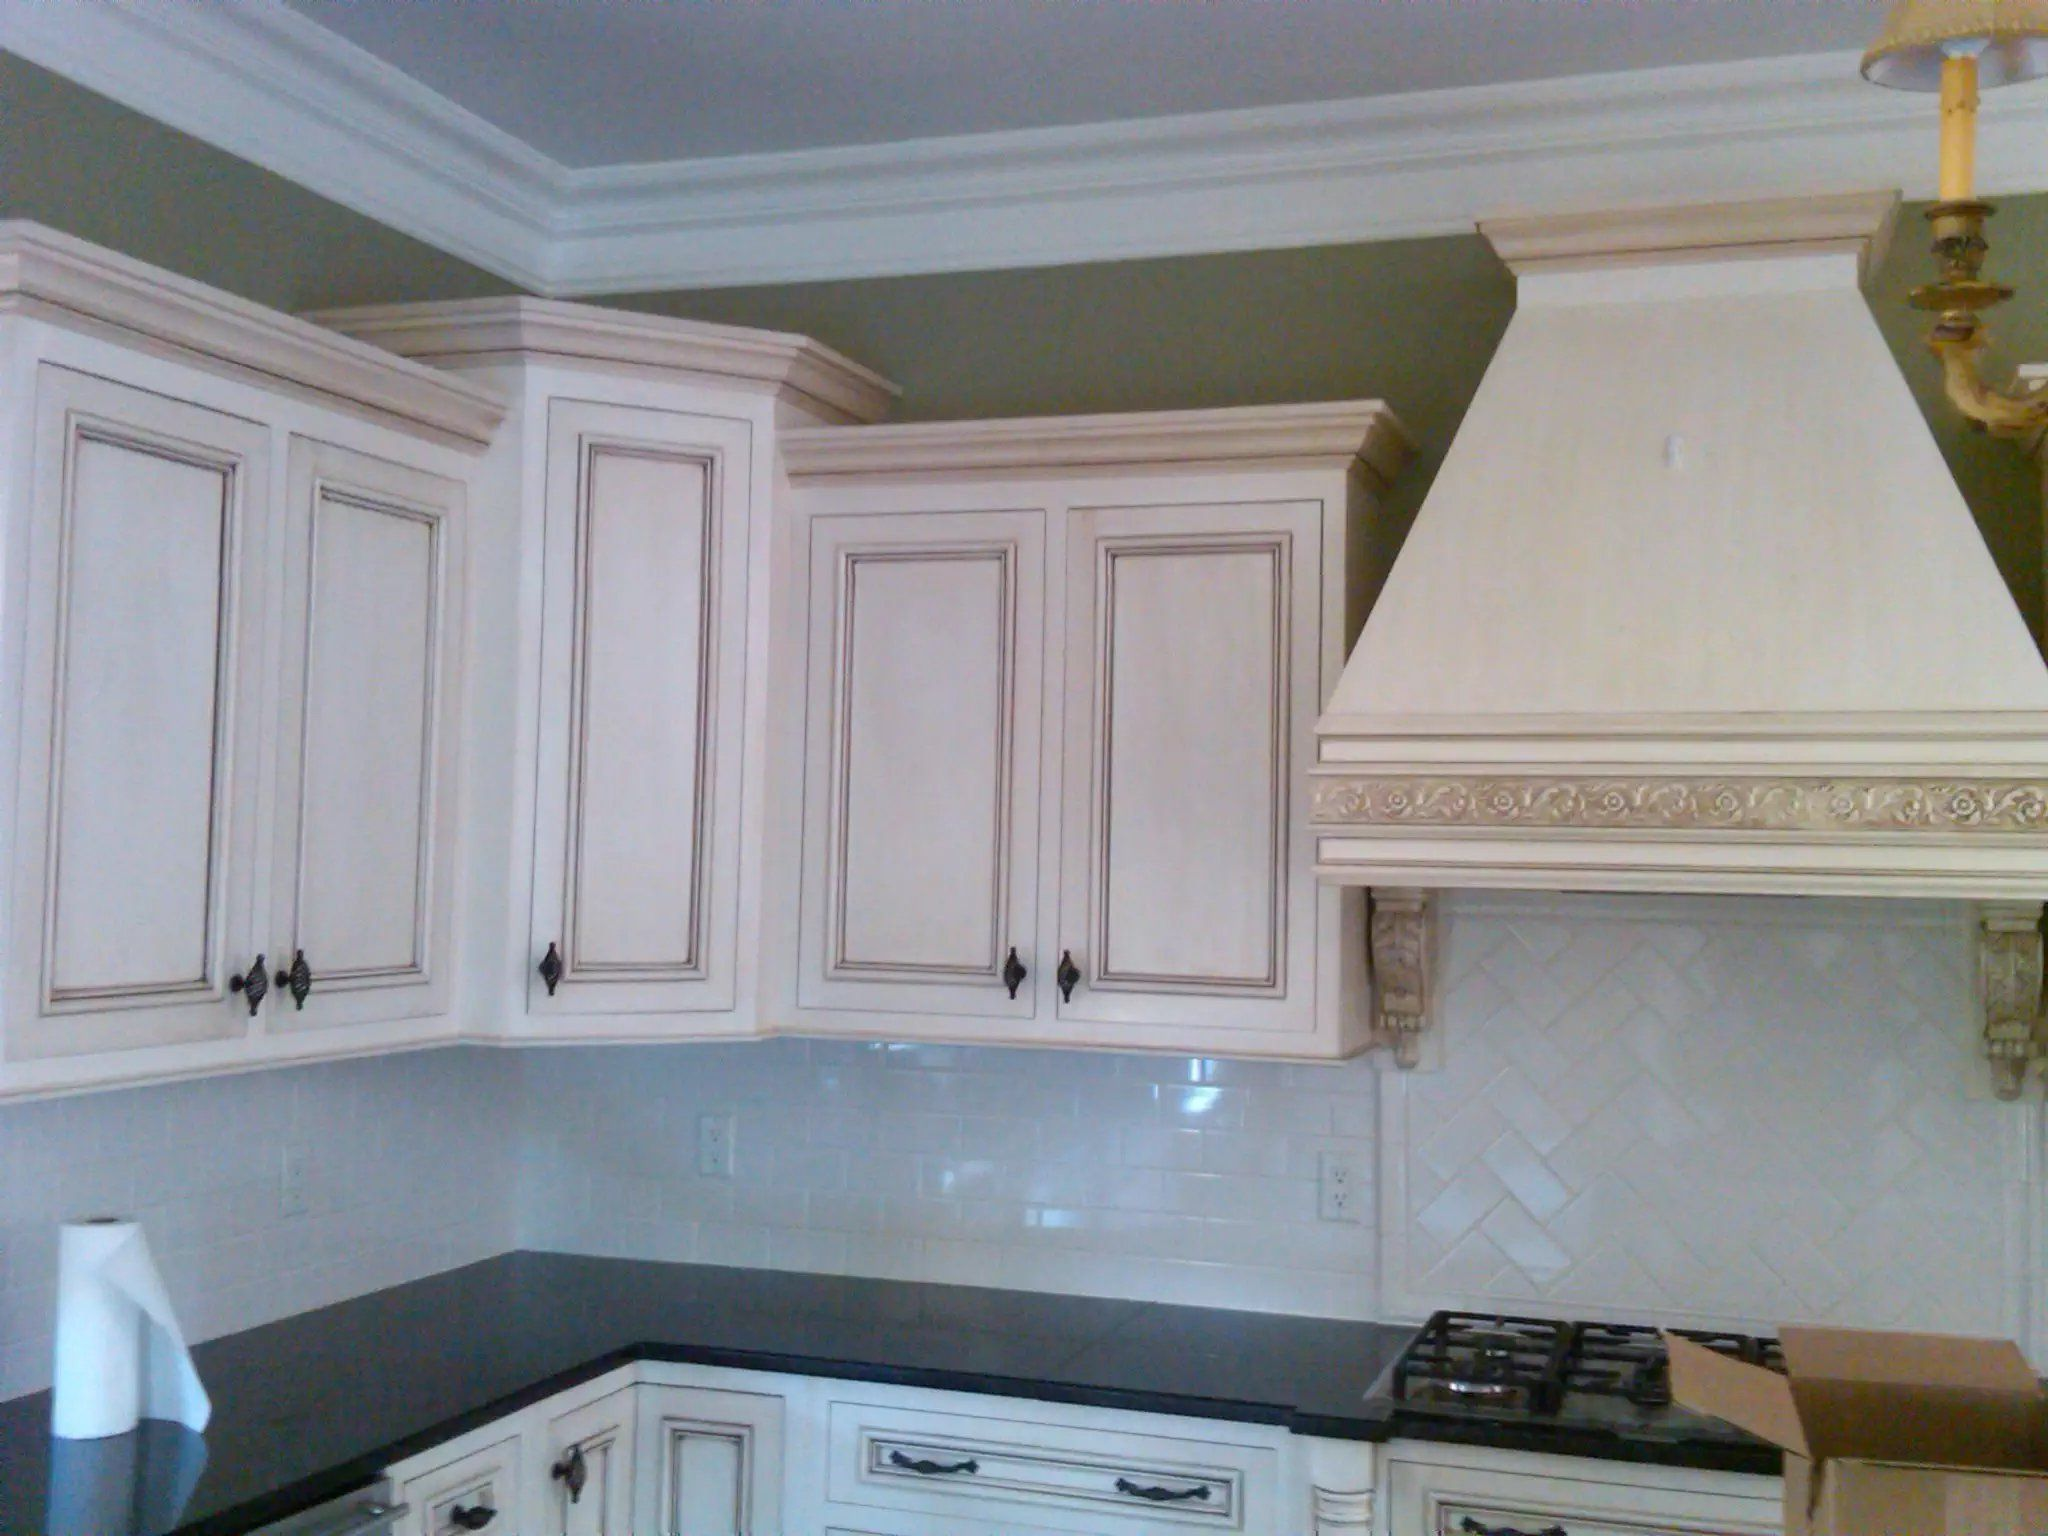 installing the glazing kitchen cabinets. Custom Painted White And Glazed Kitchen Cabinets Installing The Glazing